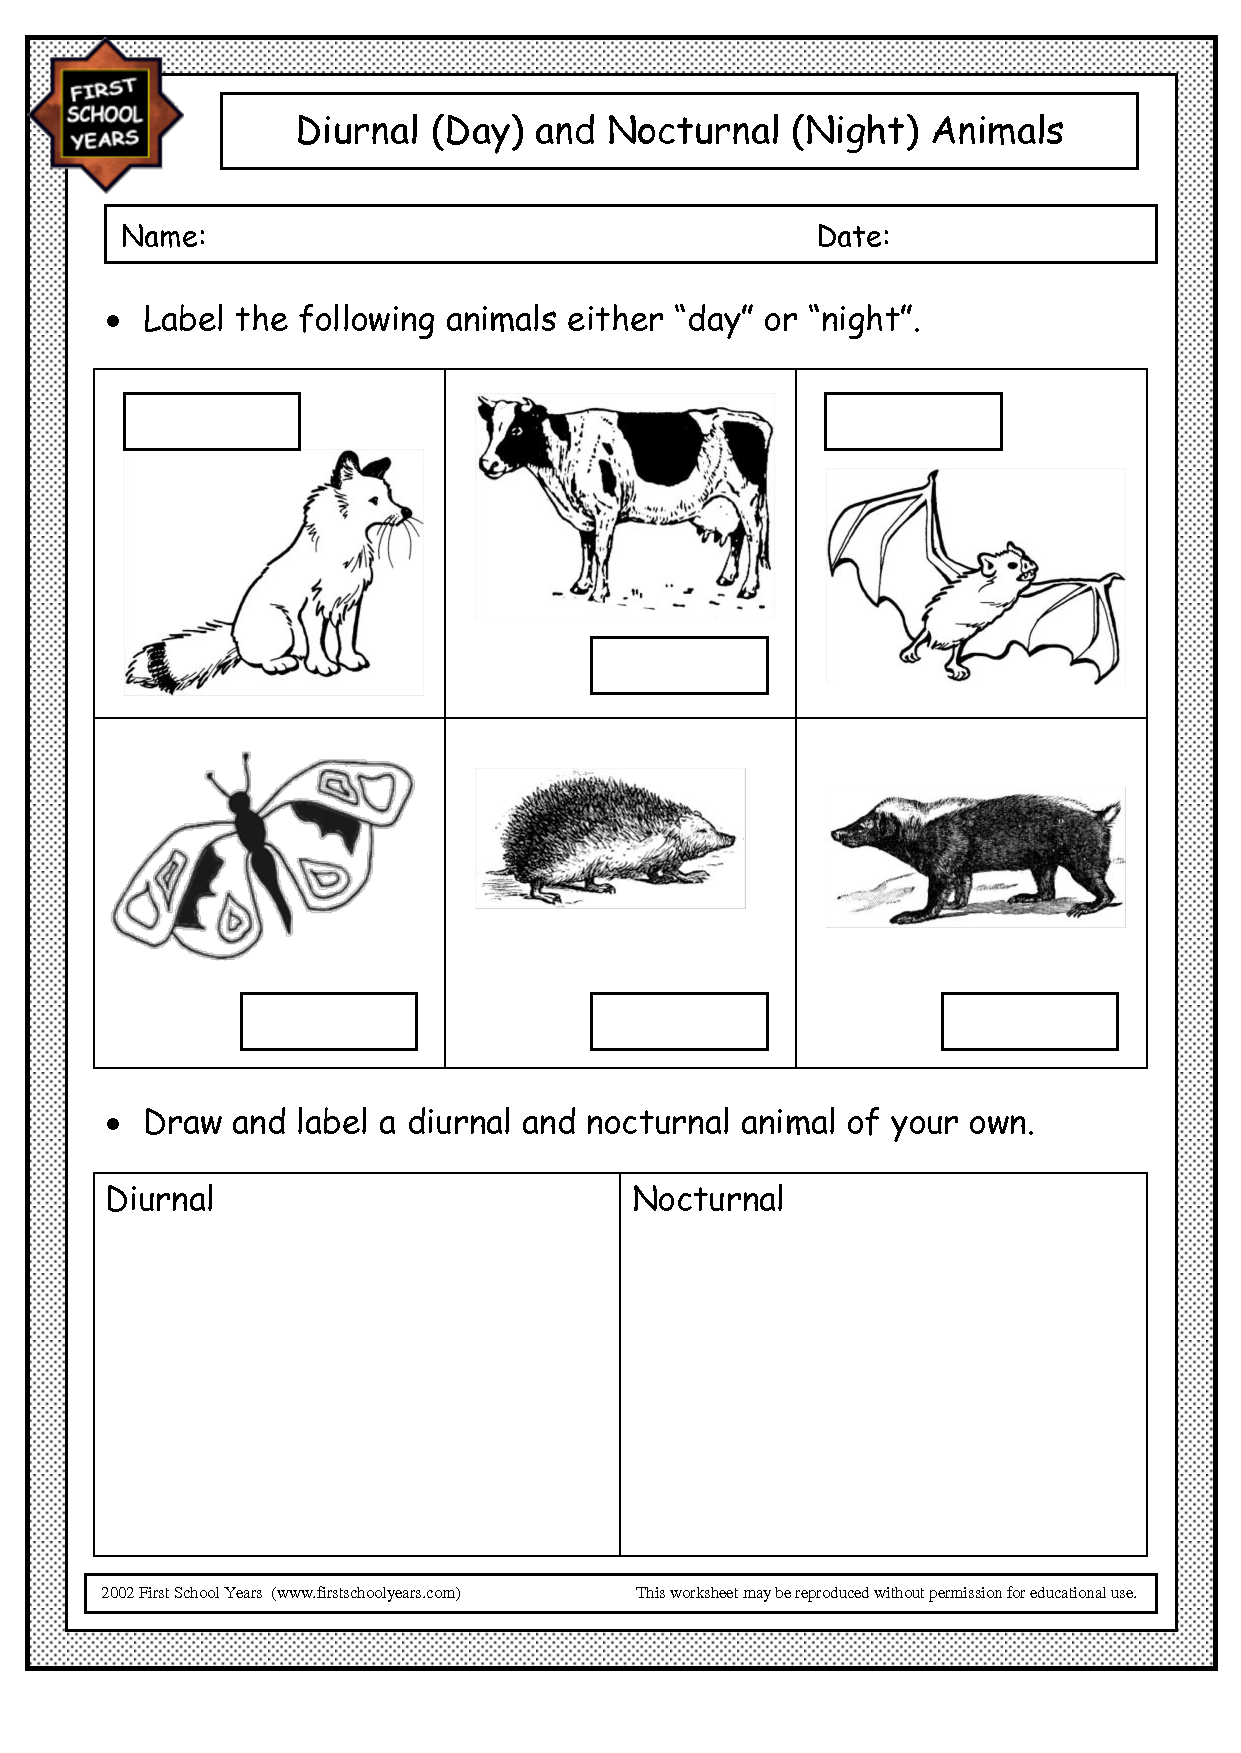 7 Best Images Of Kingdoms Of Life Worksheets